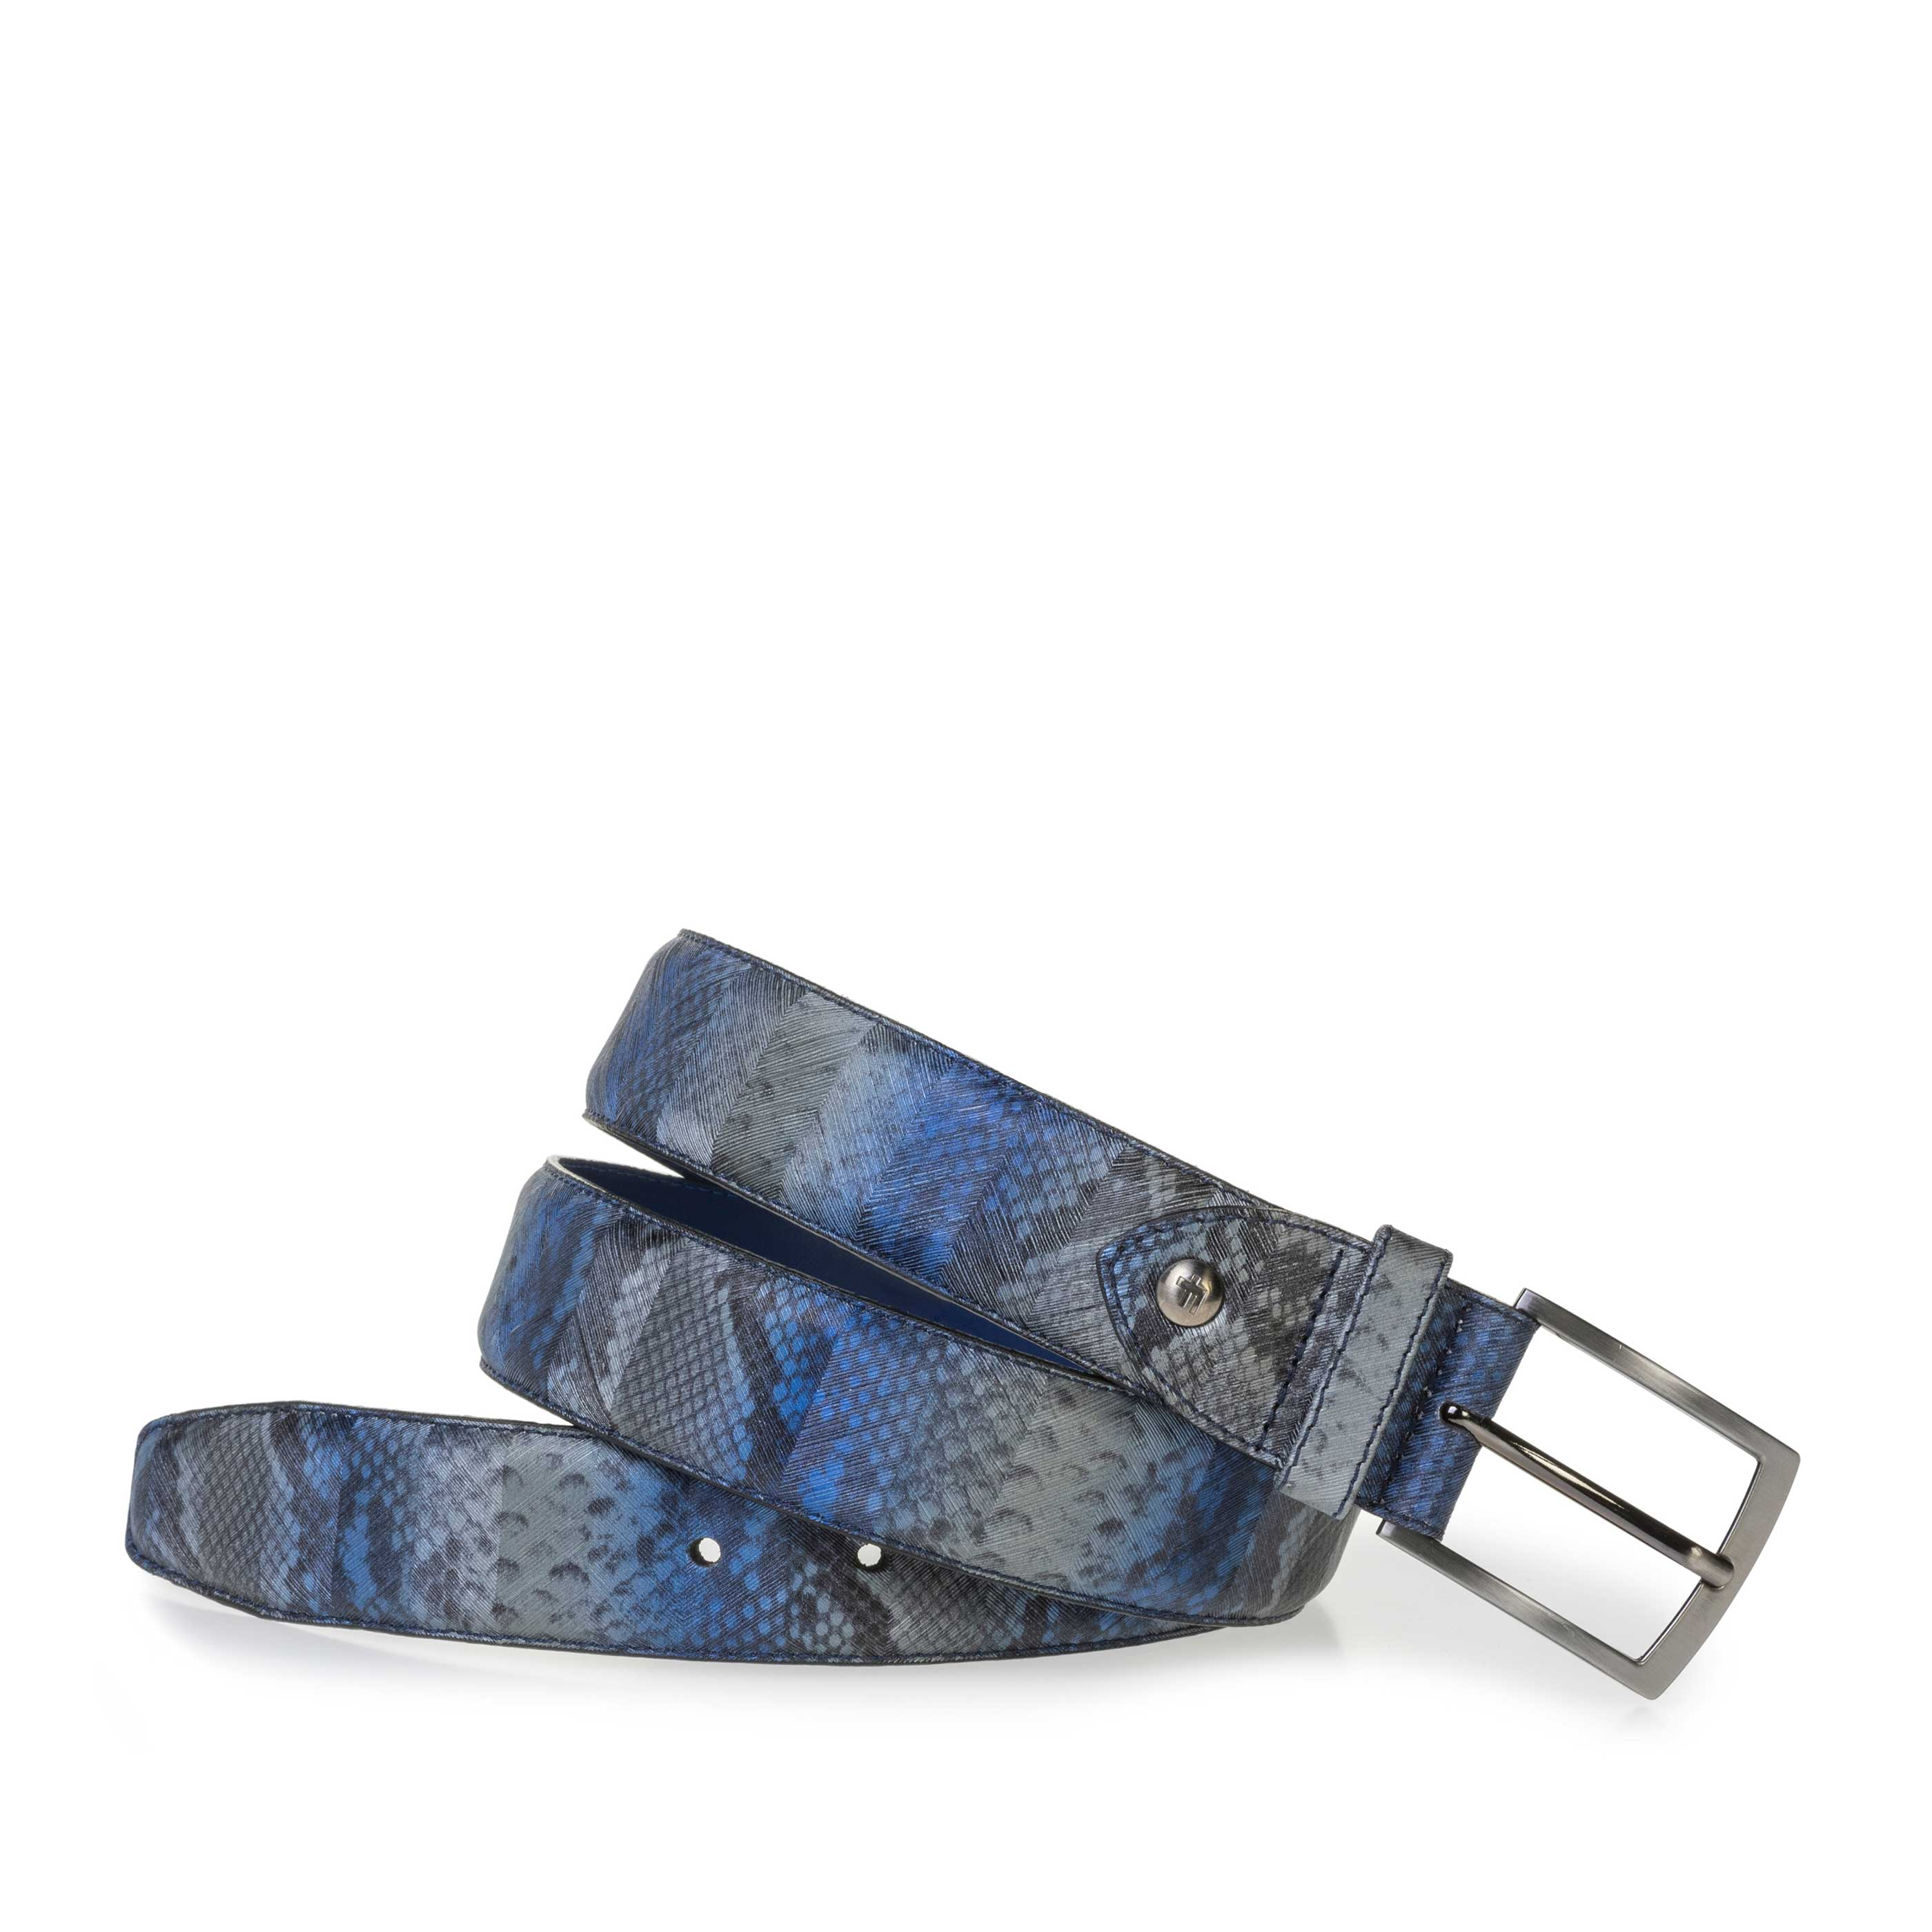 75201/88 - Blue belt with a snake print